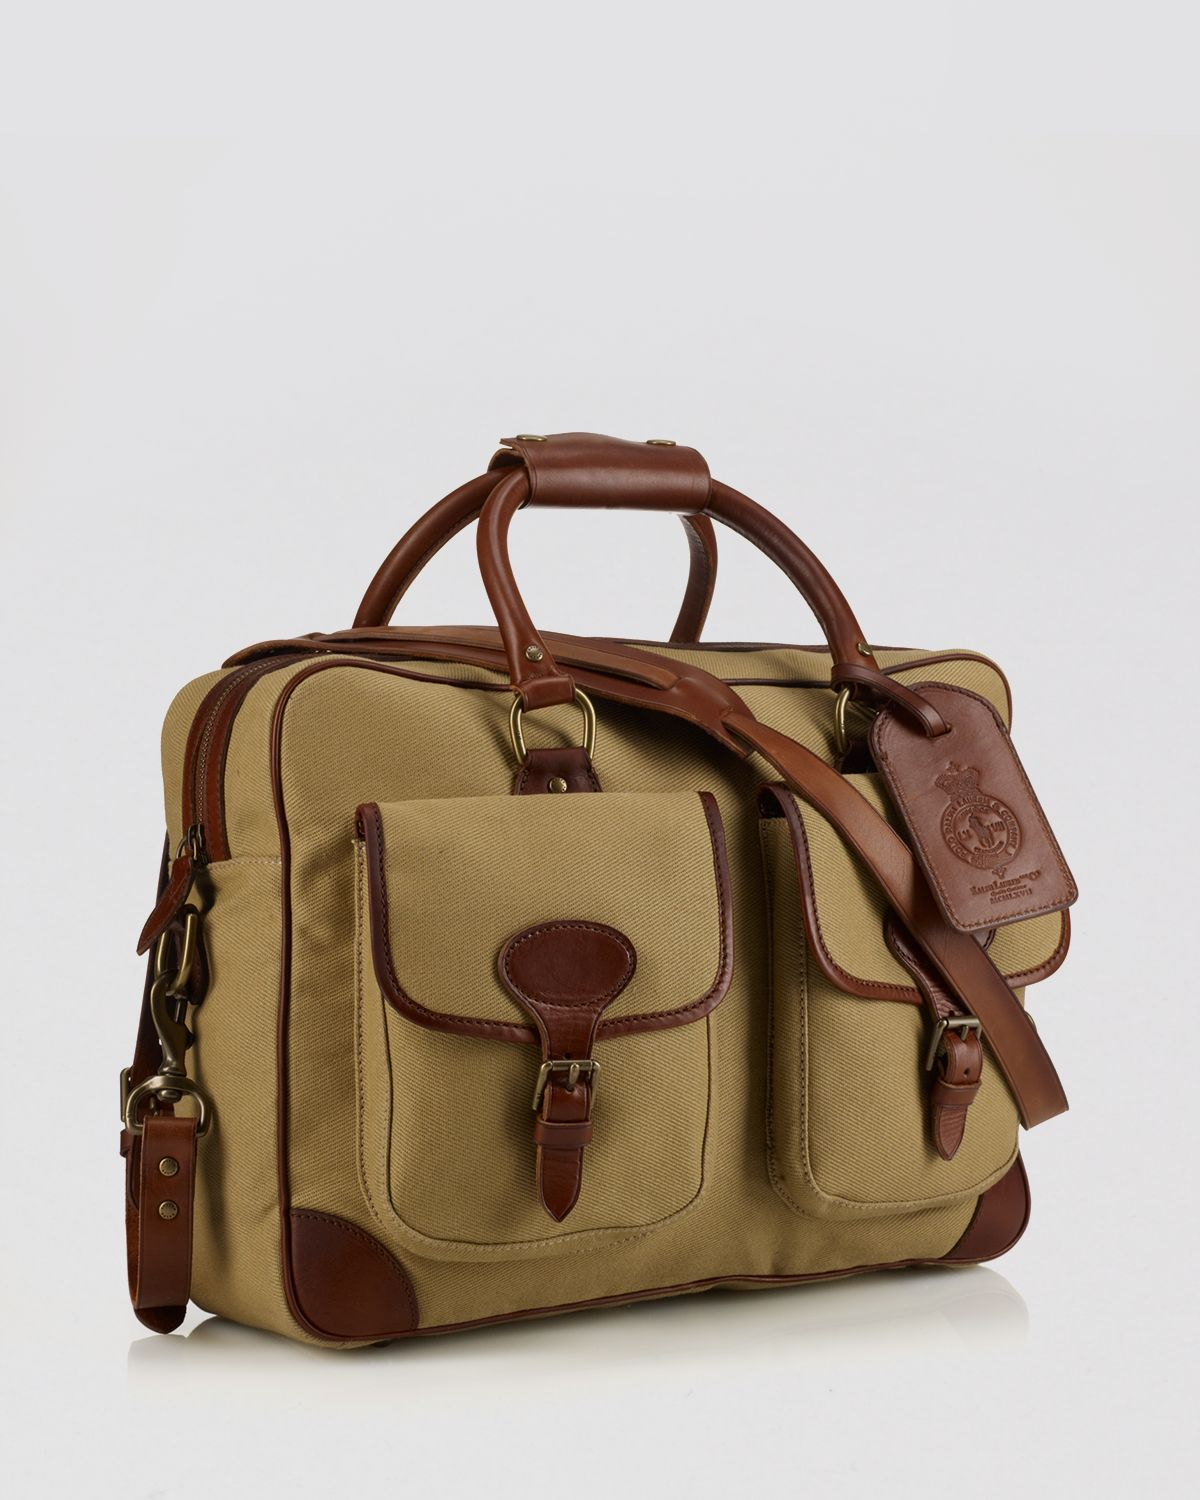 7a5f02415db2 ... real lyst ralph lauren polo canvas leather commuter bag in natural  d790b aca6b